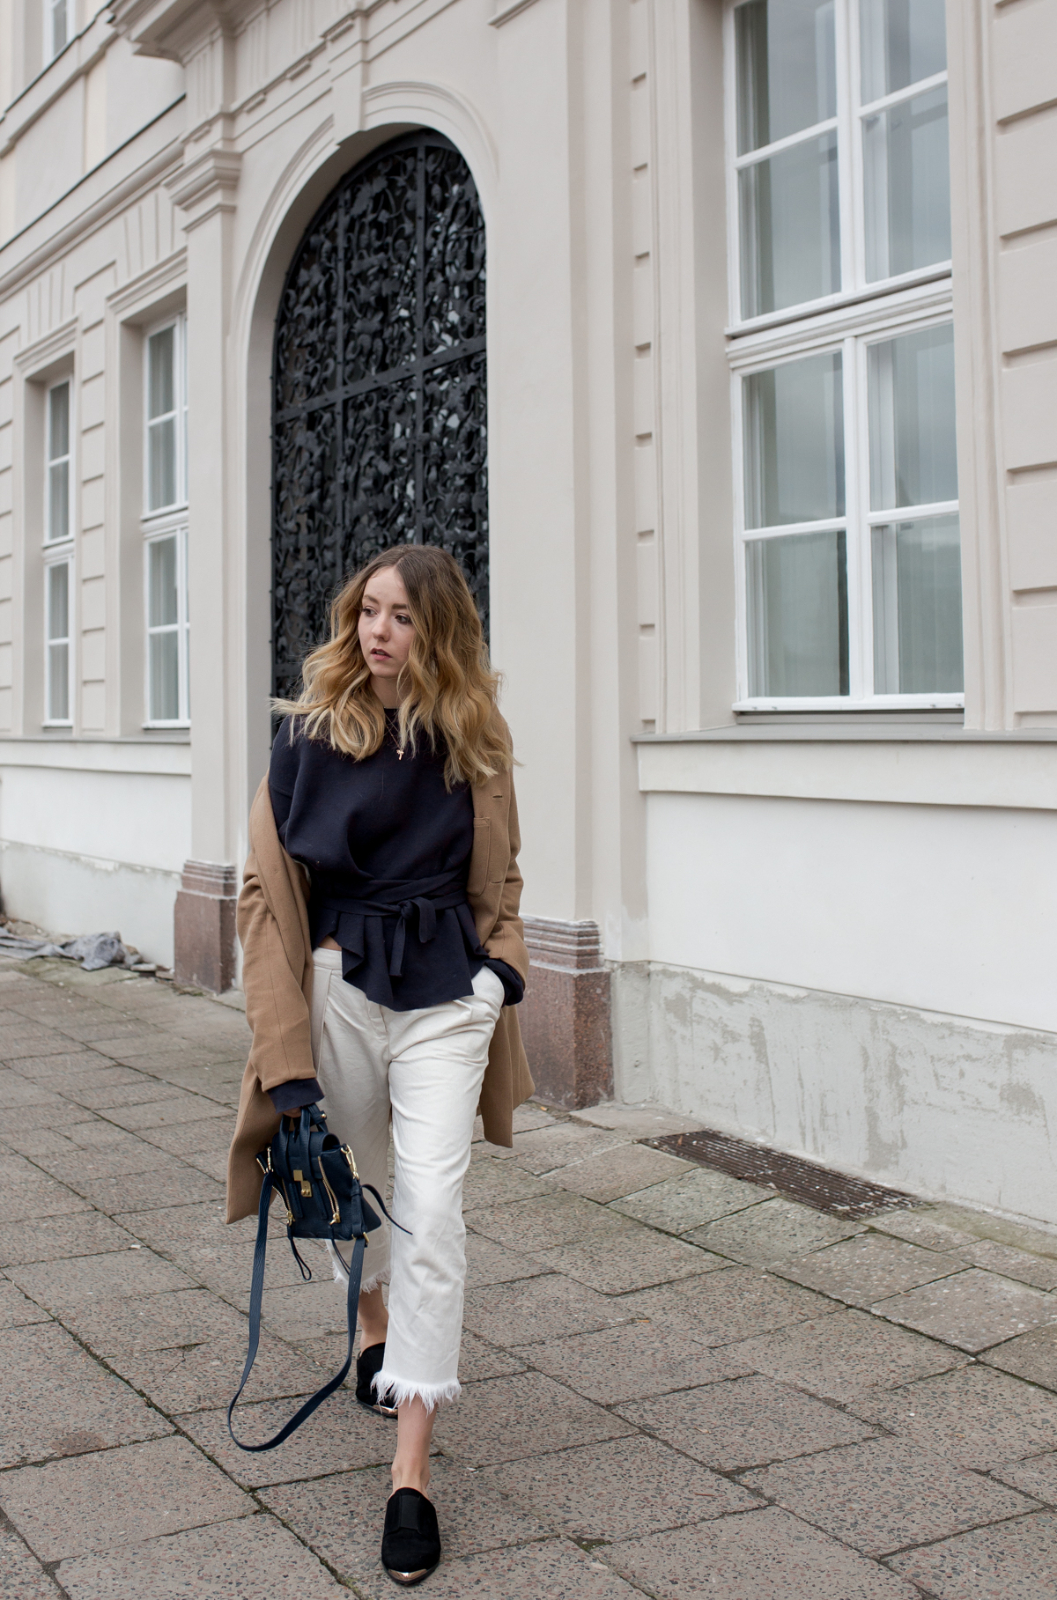 Wickelsweater_Fransenjeans_The-Limits-of-Control-Fashion-Fashionblogger-Blogger-Berlin-Deutschland-Modeblog-Modeblogger